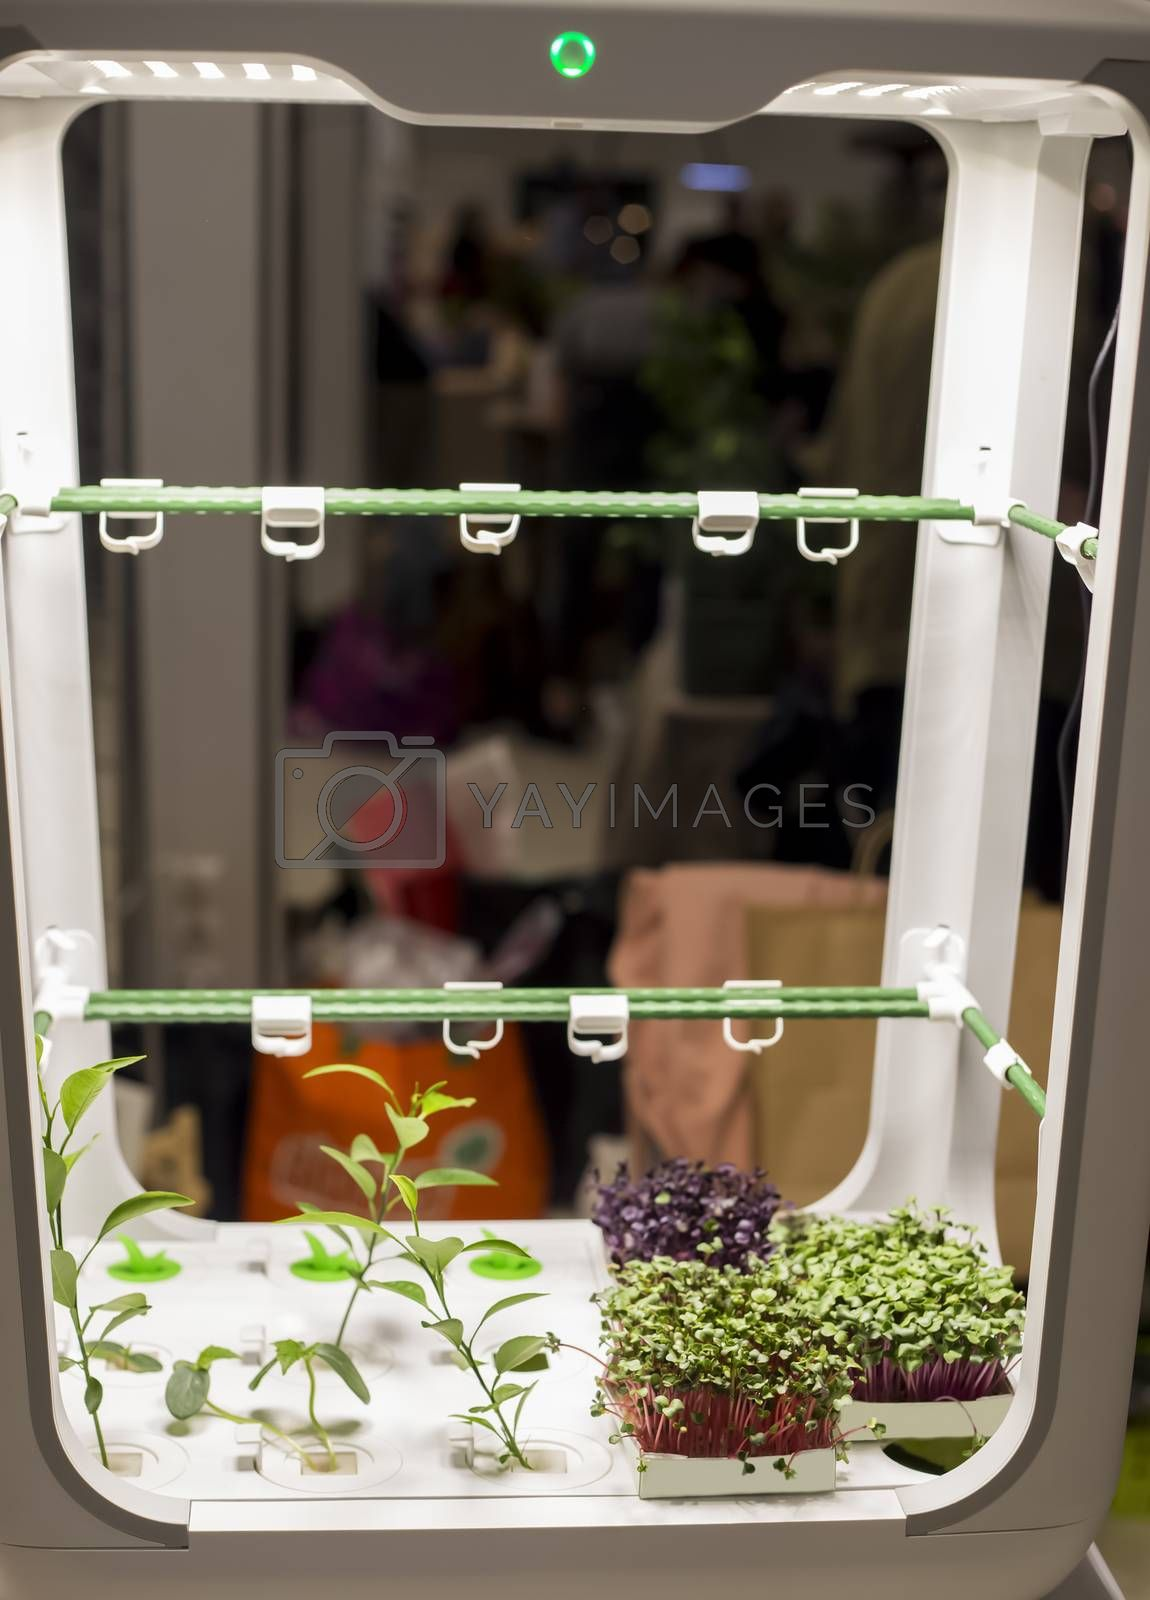 micro farm for growing plants at home, hydroponics with microgreen sprouts, growing healthy eating concept at home garden. Soft focus